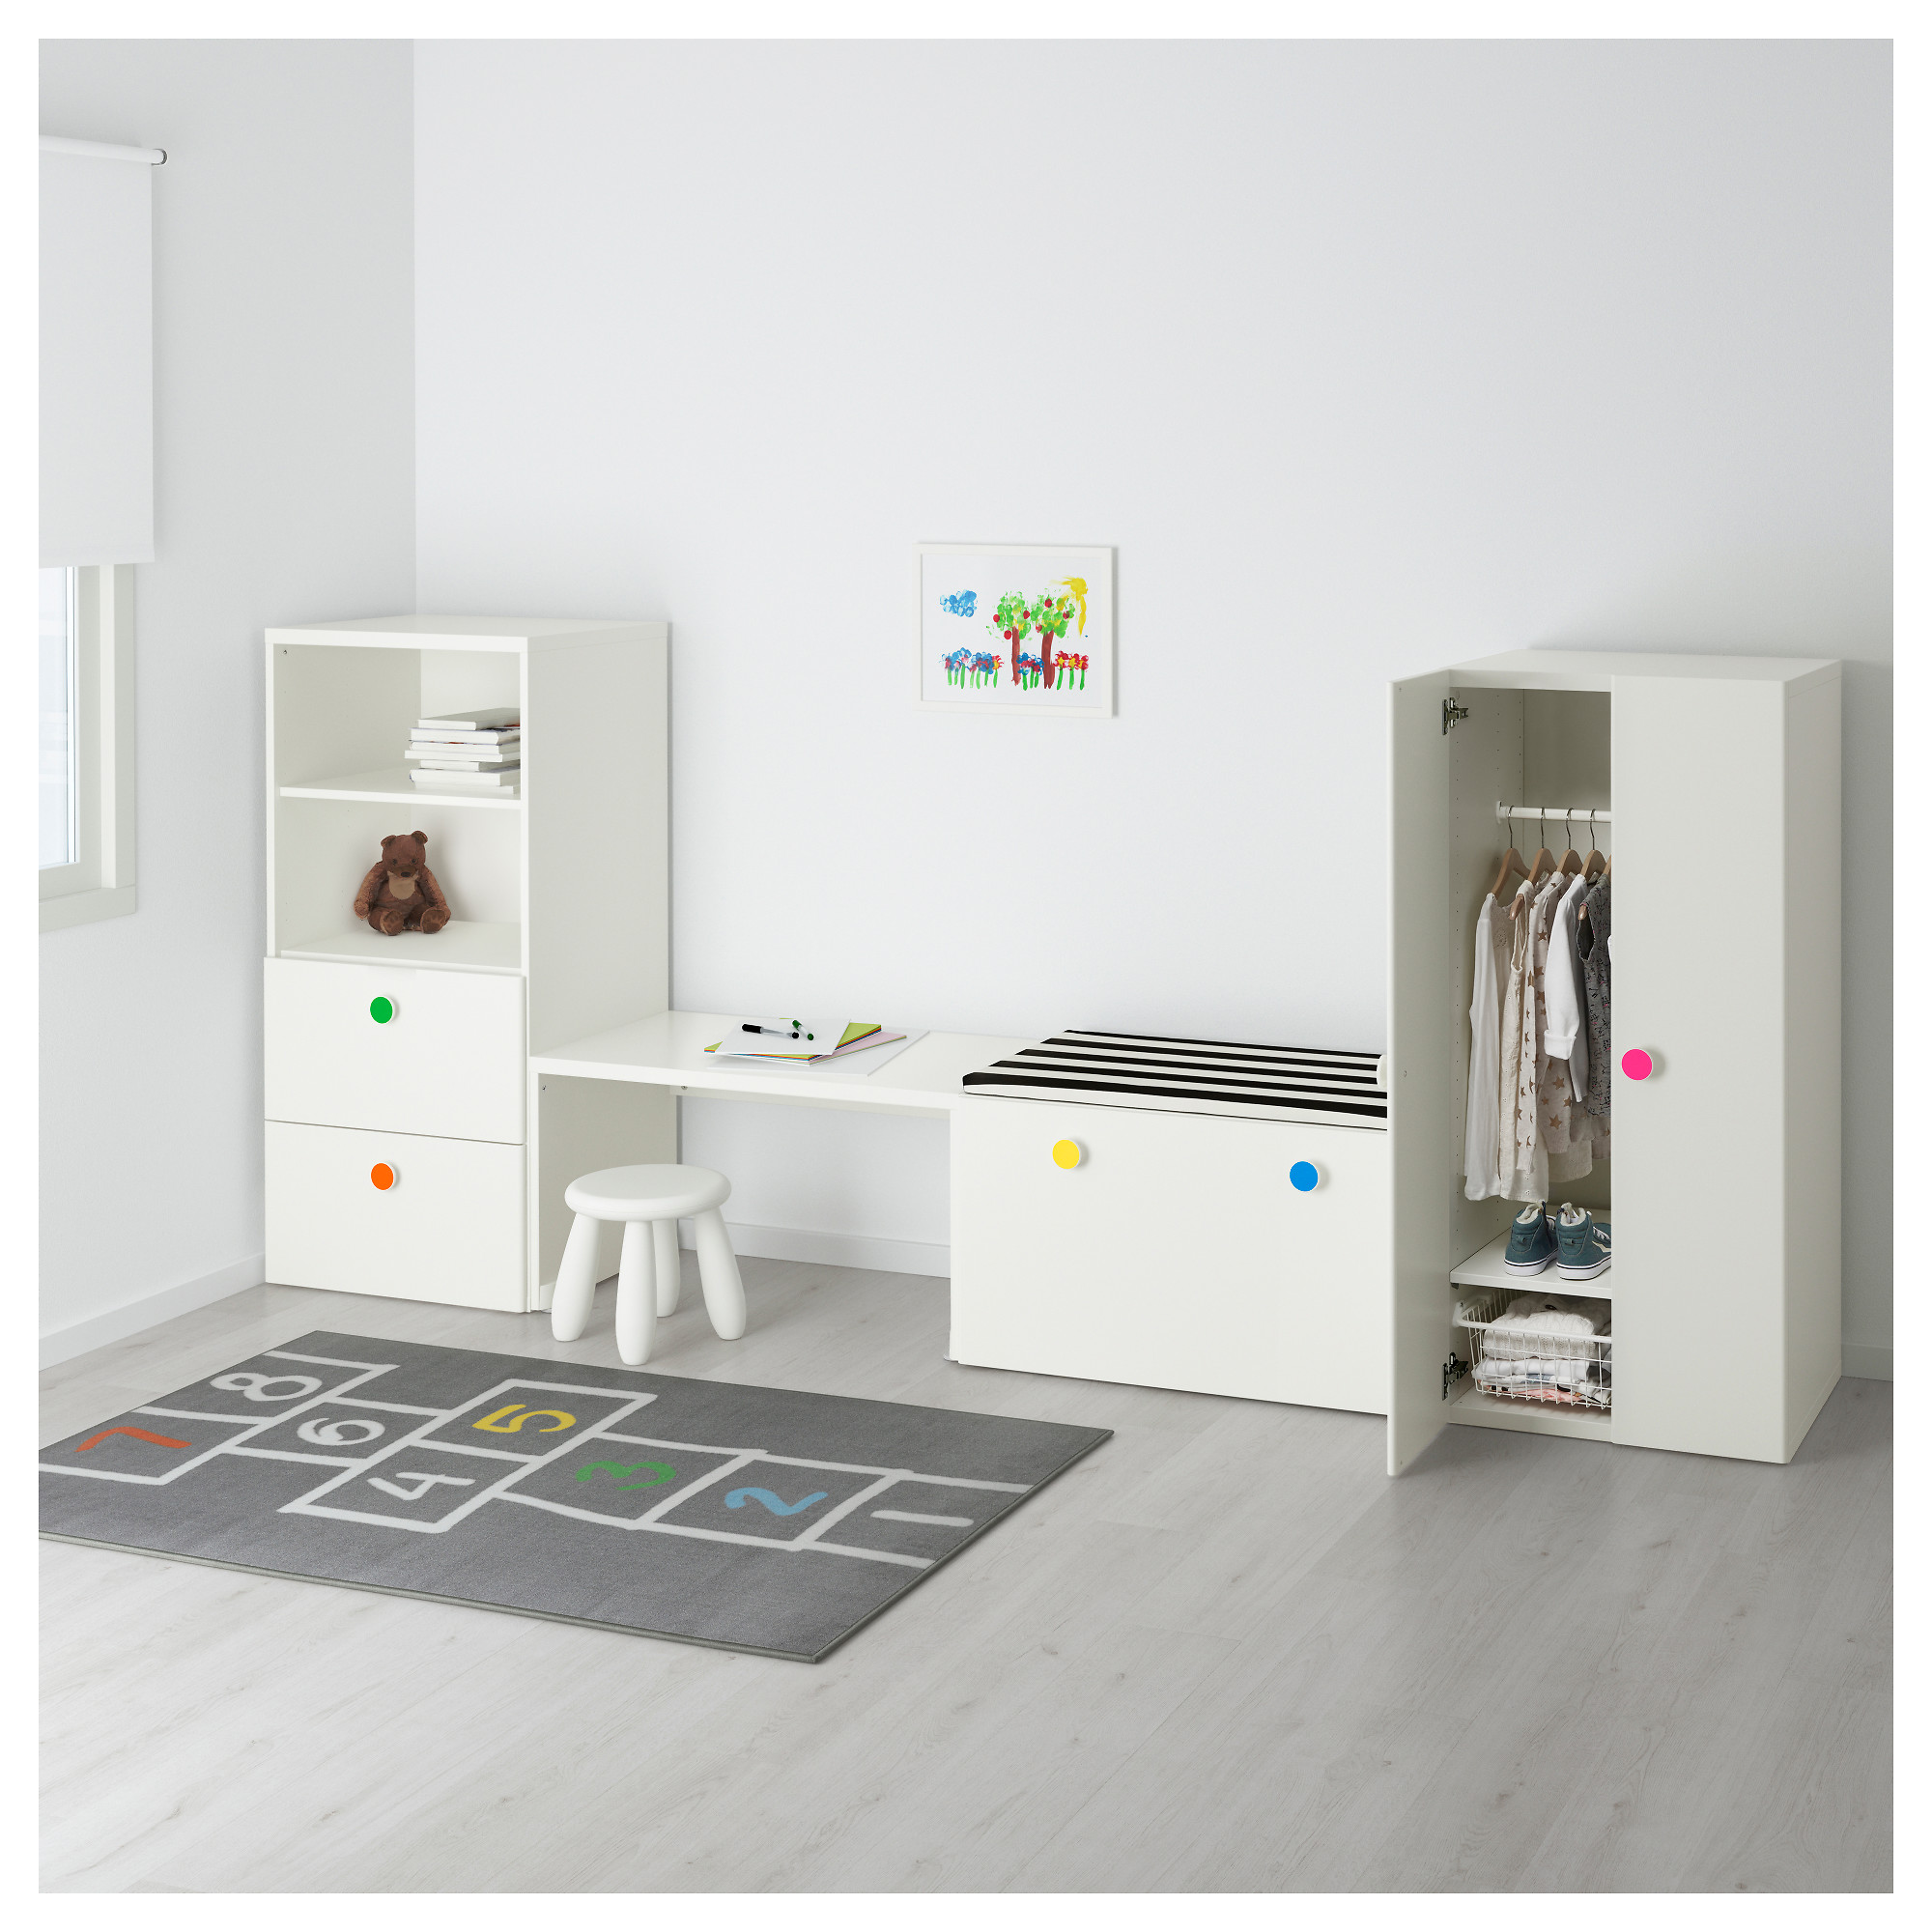 Surprising Stuva Folja Storage Combination With Bench White Ikea Gamerscity Chair Design For Home Gamerscityorg